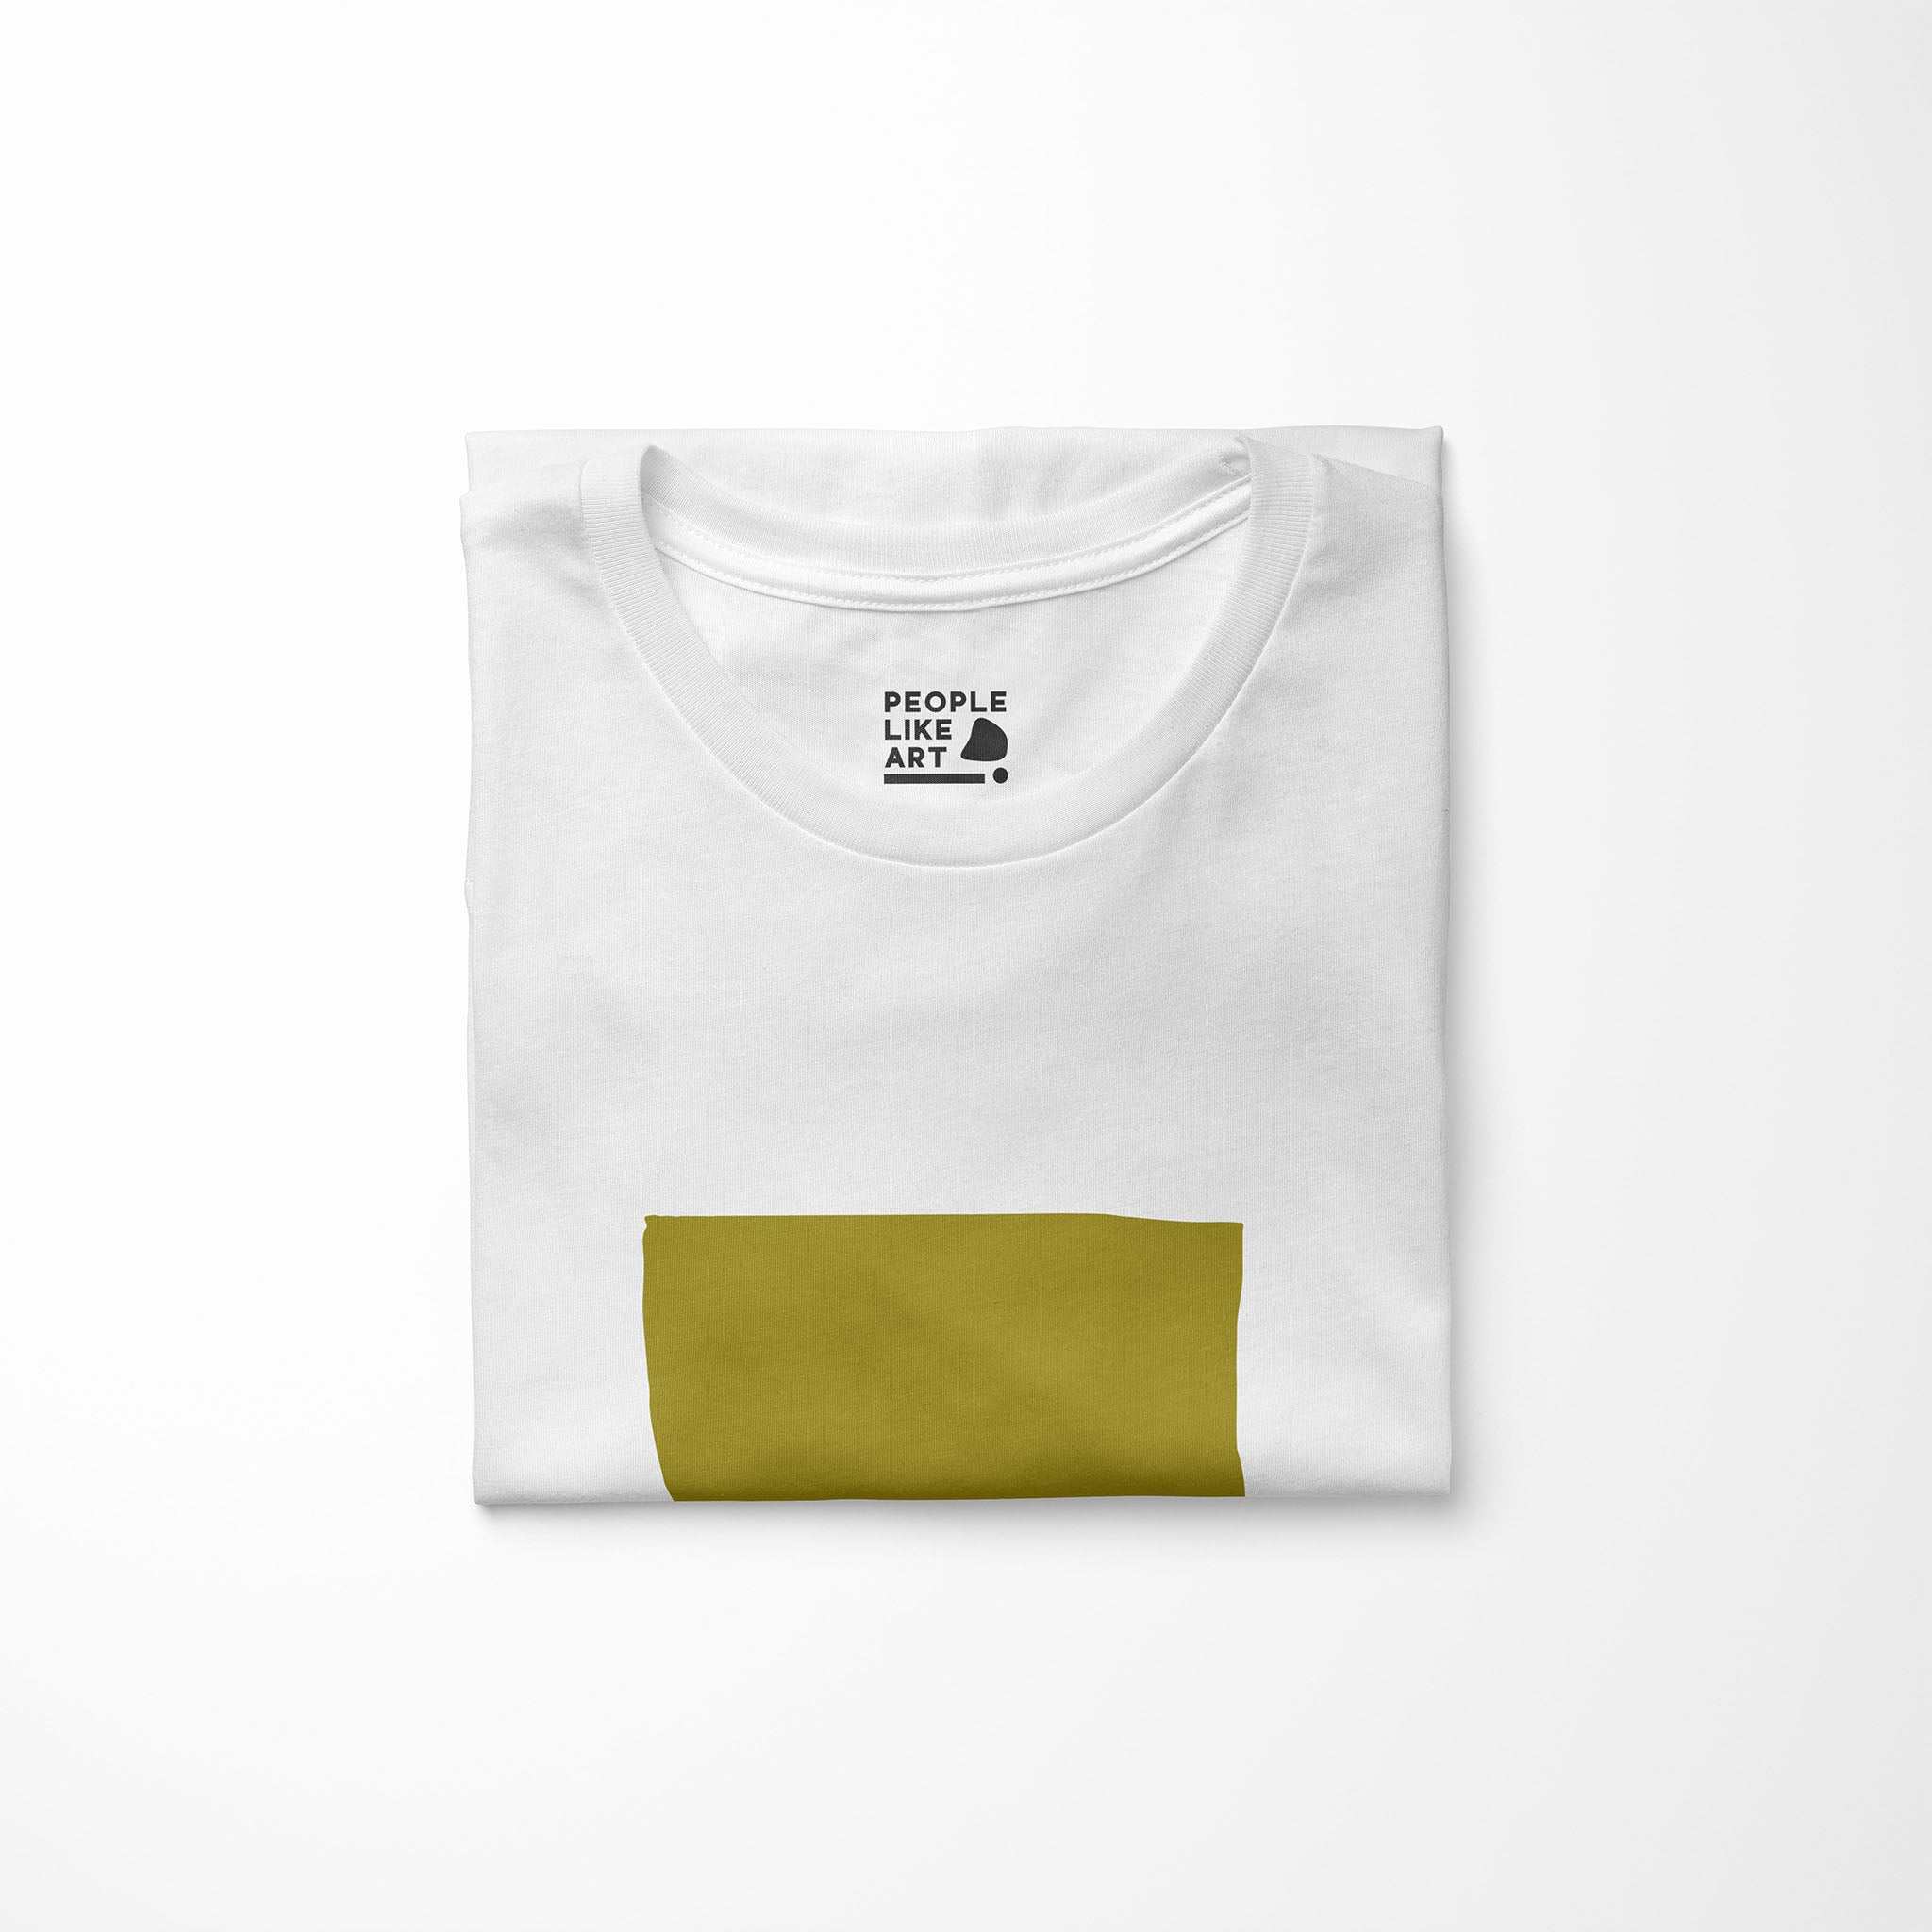 ARTIFACT Relaxed Fit Women's 100% Cotton White T-Shirt folded